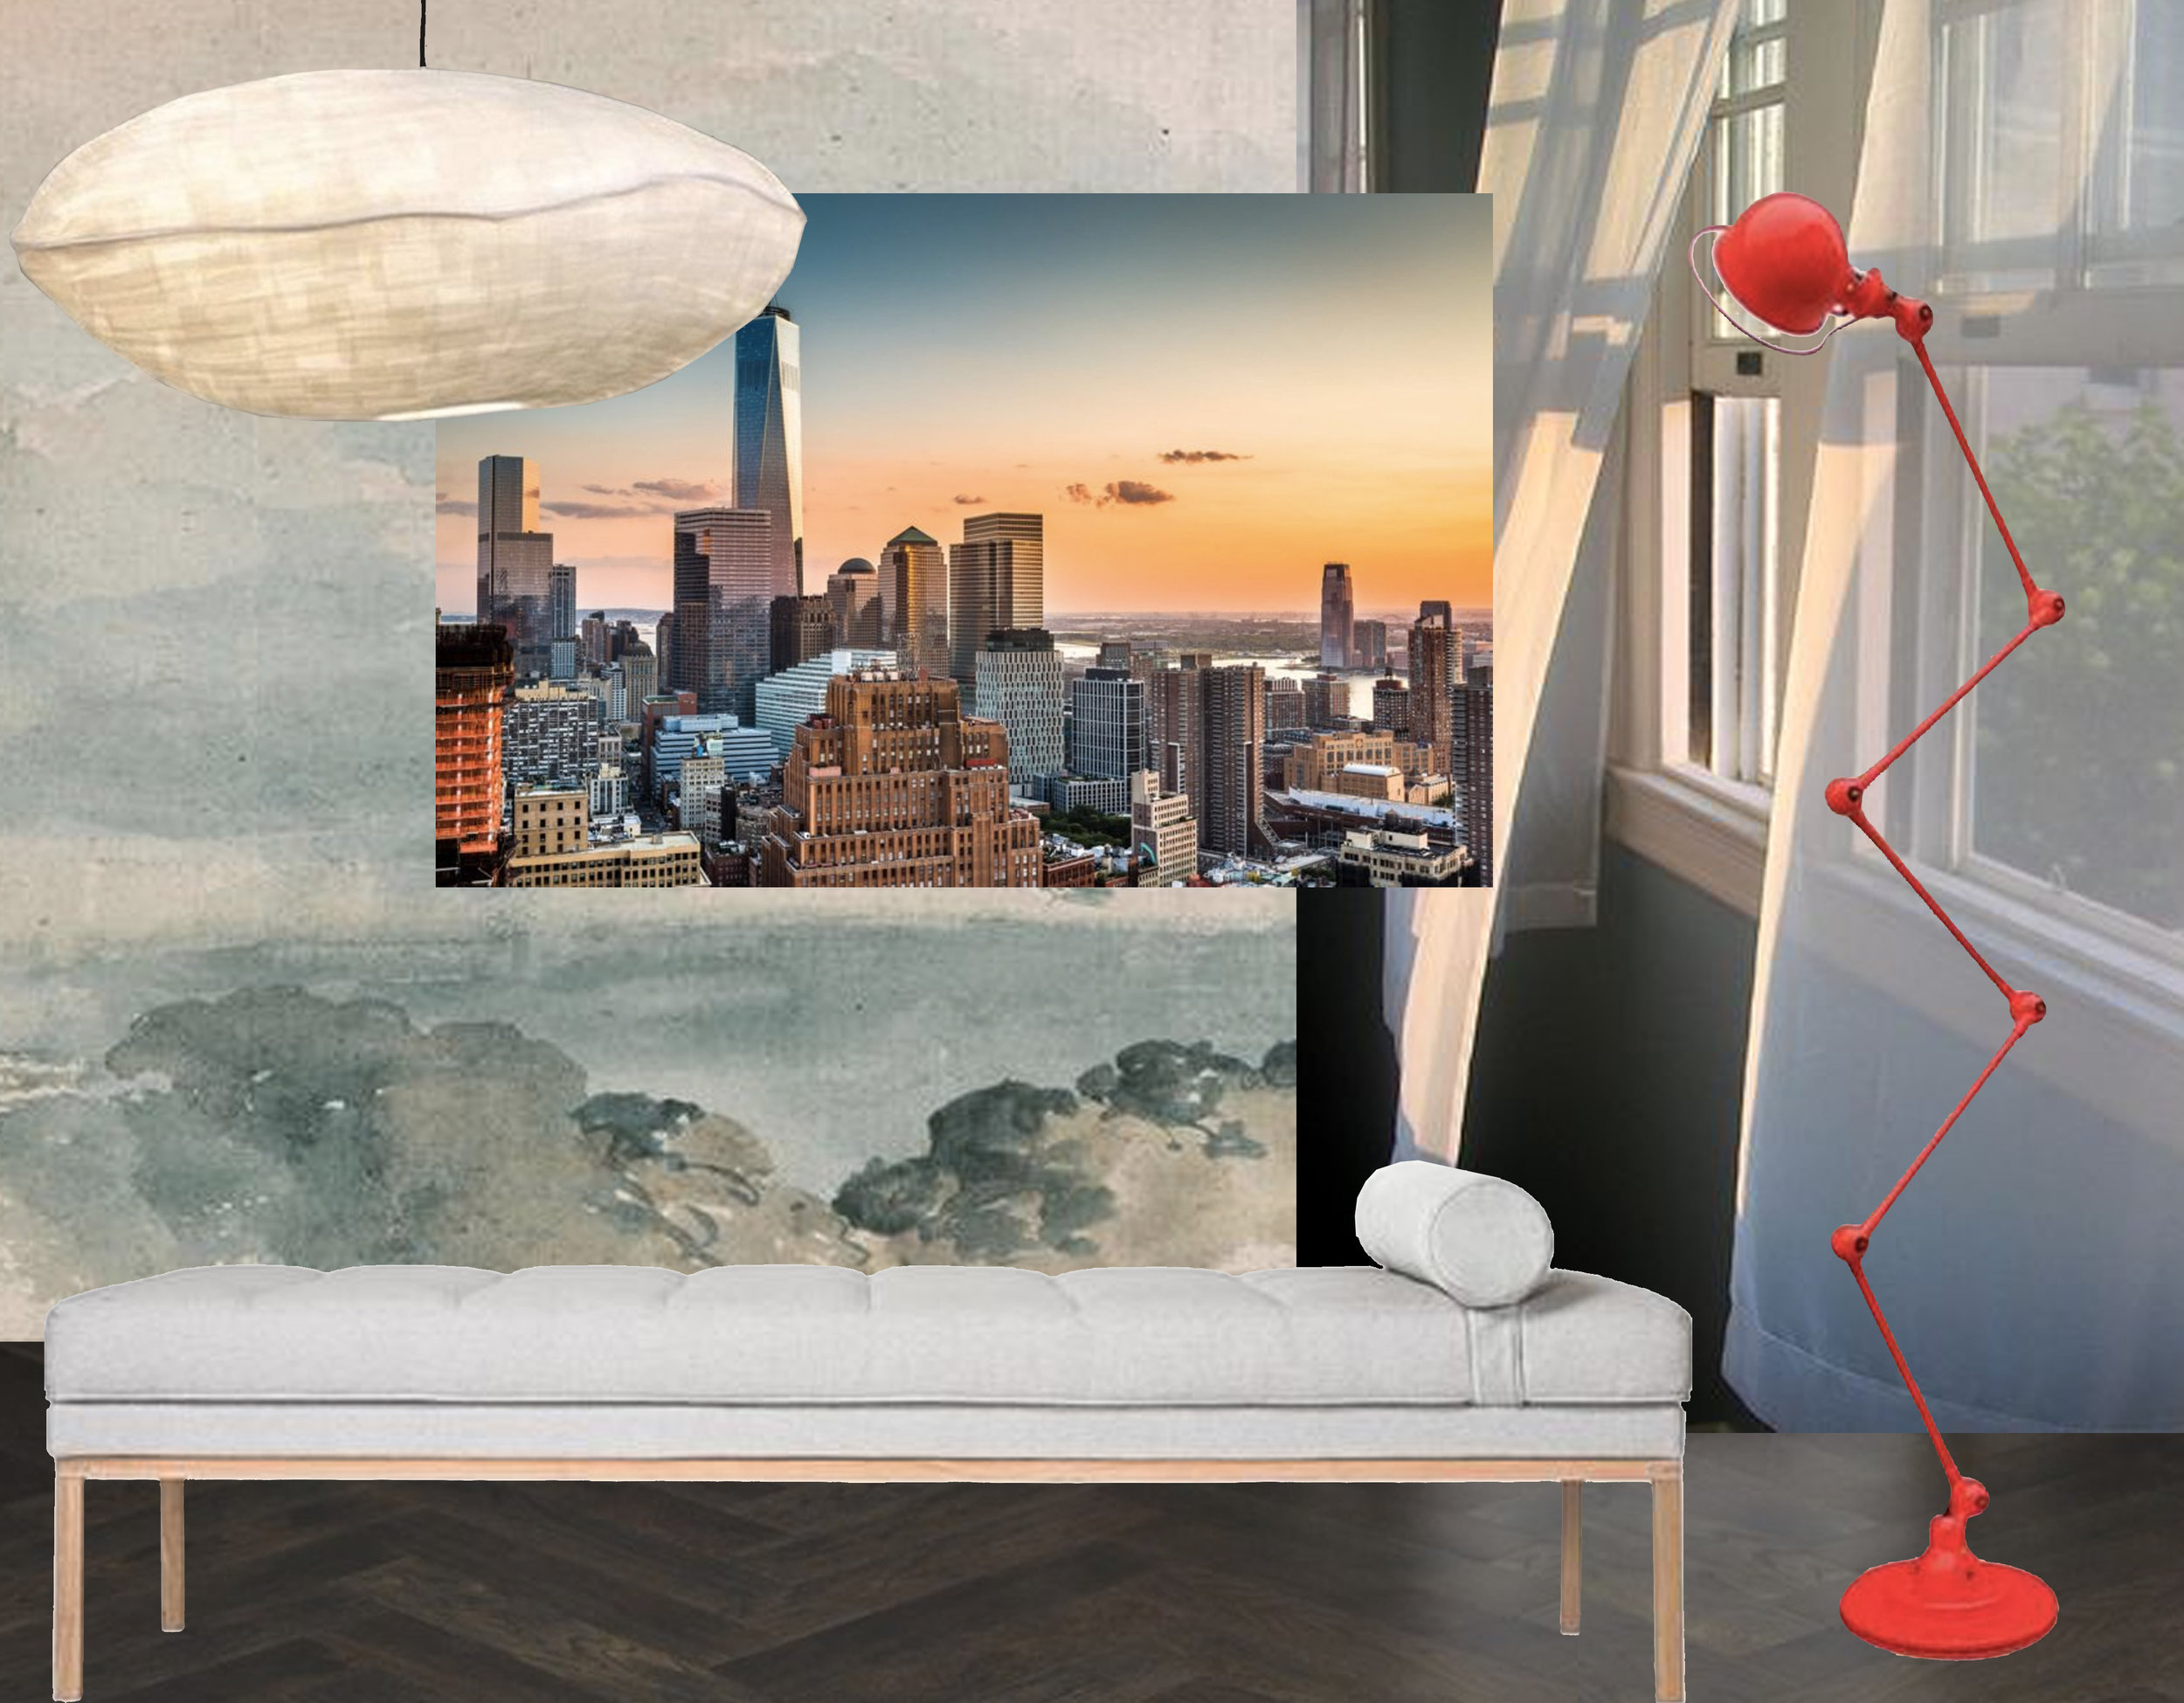 daybed  Design & After  - mural One World Trade Center from  Murals Wallpaper - hanging lamp Nuage  La Redoute  - standing lamp  Jielde  - window view via  Flickr